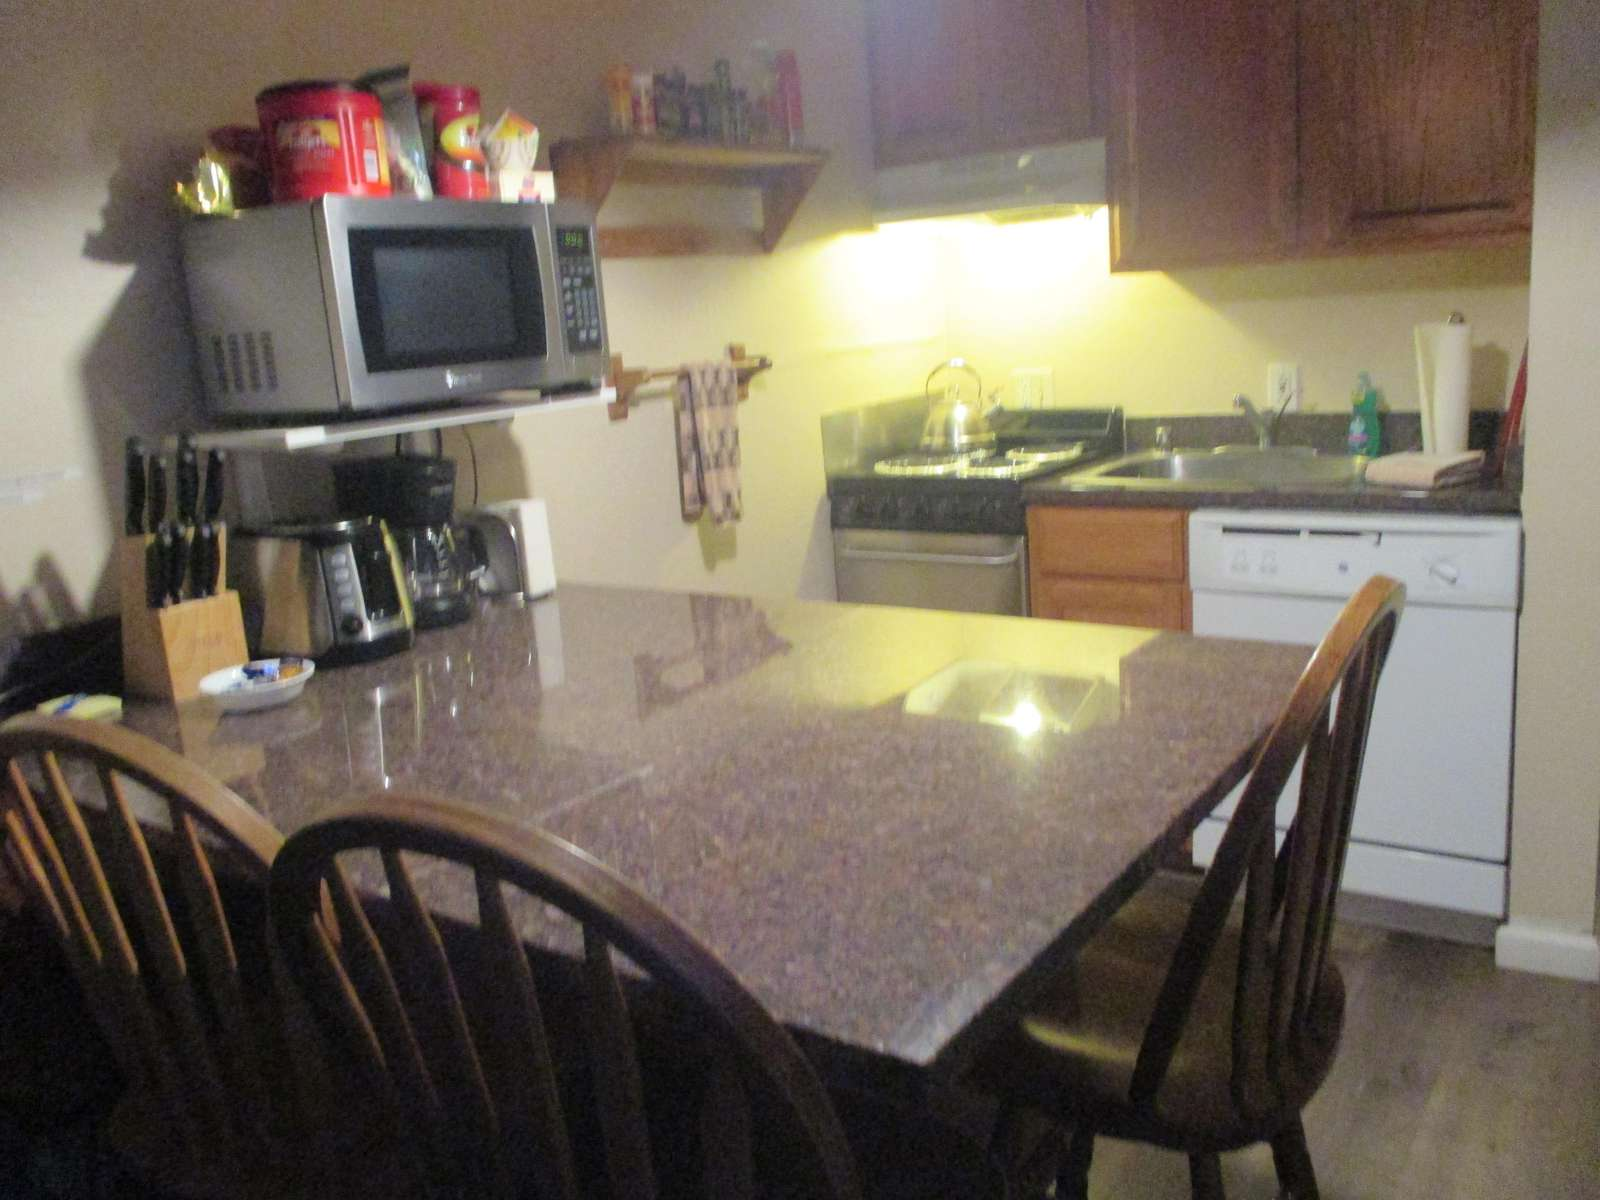 Kitchen is fully equipped with stove-top oven, dishwasher, microwave, dishes, cooking utensils and pots & pans.